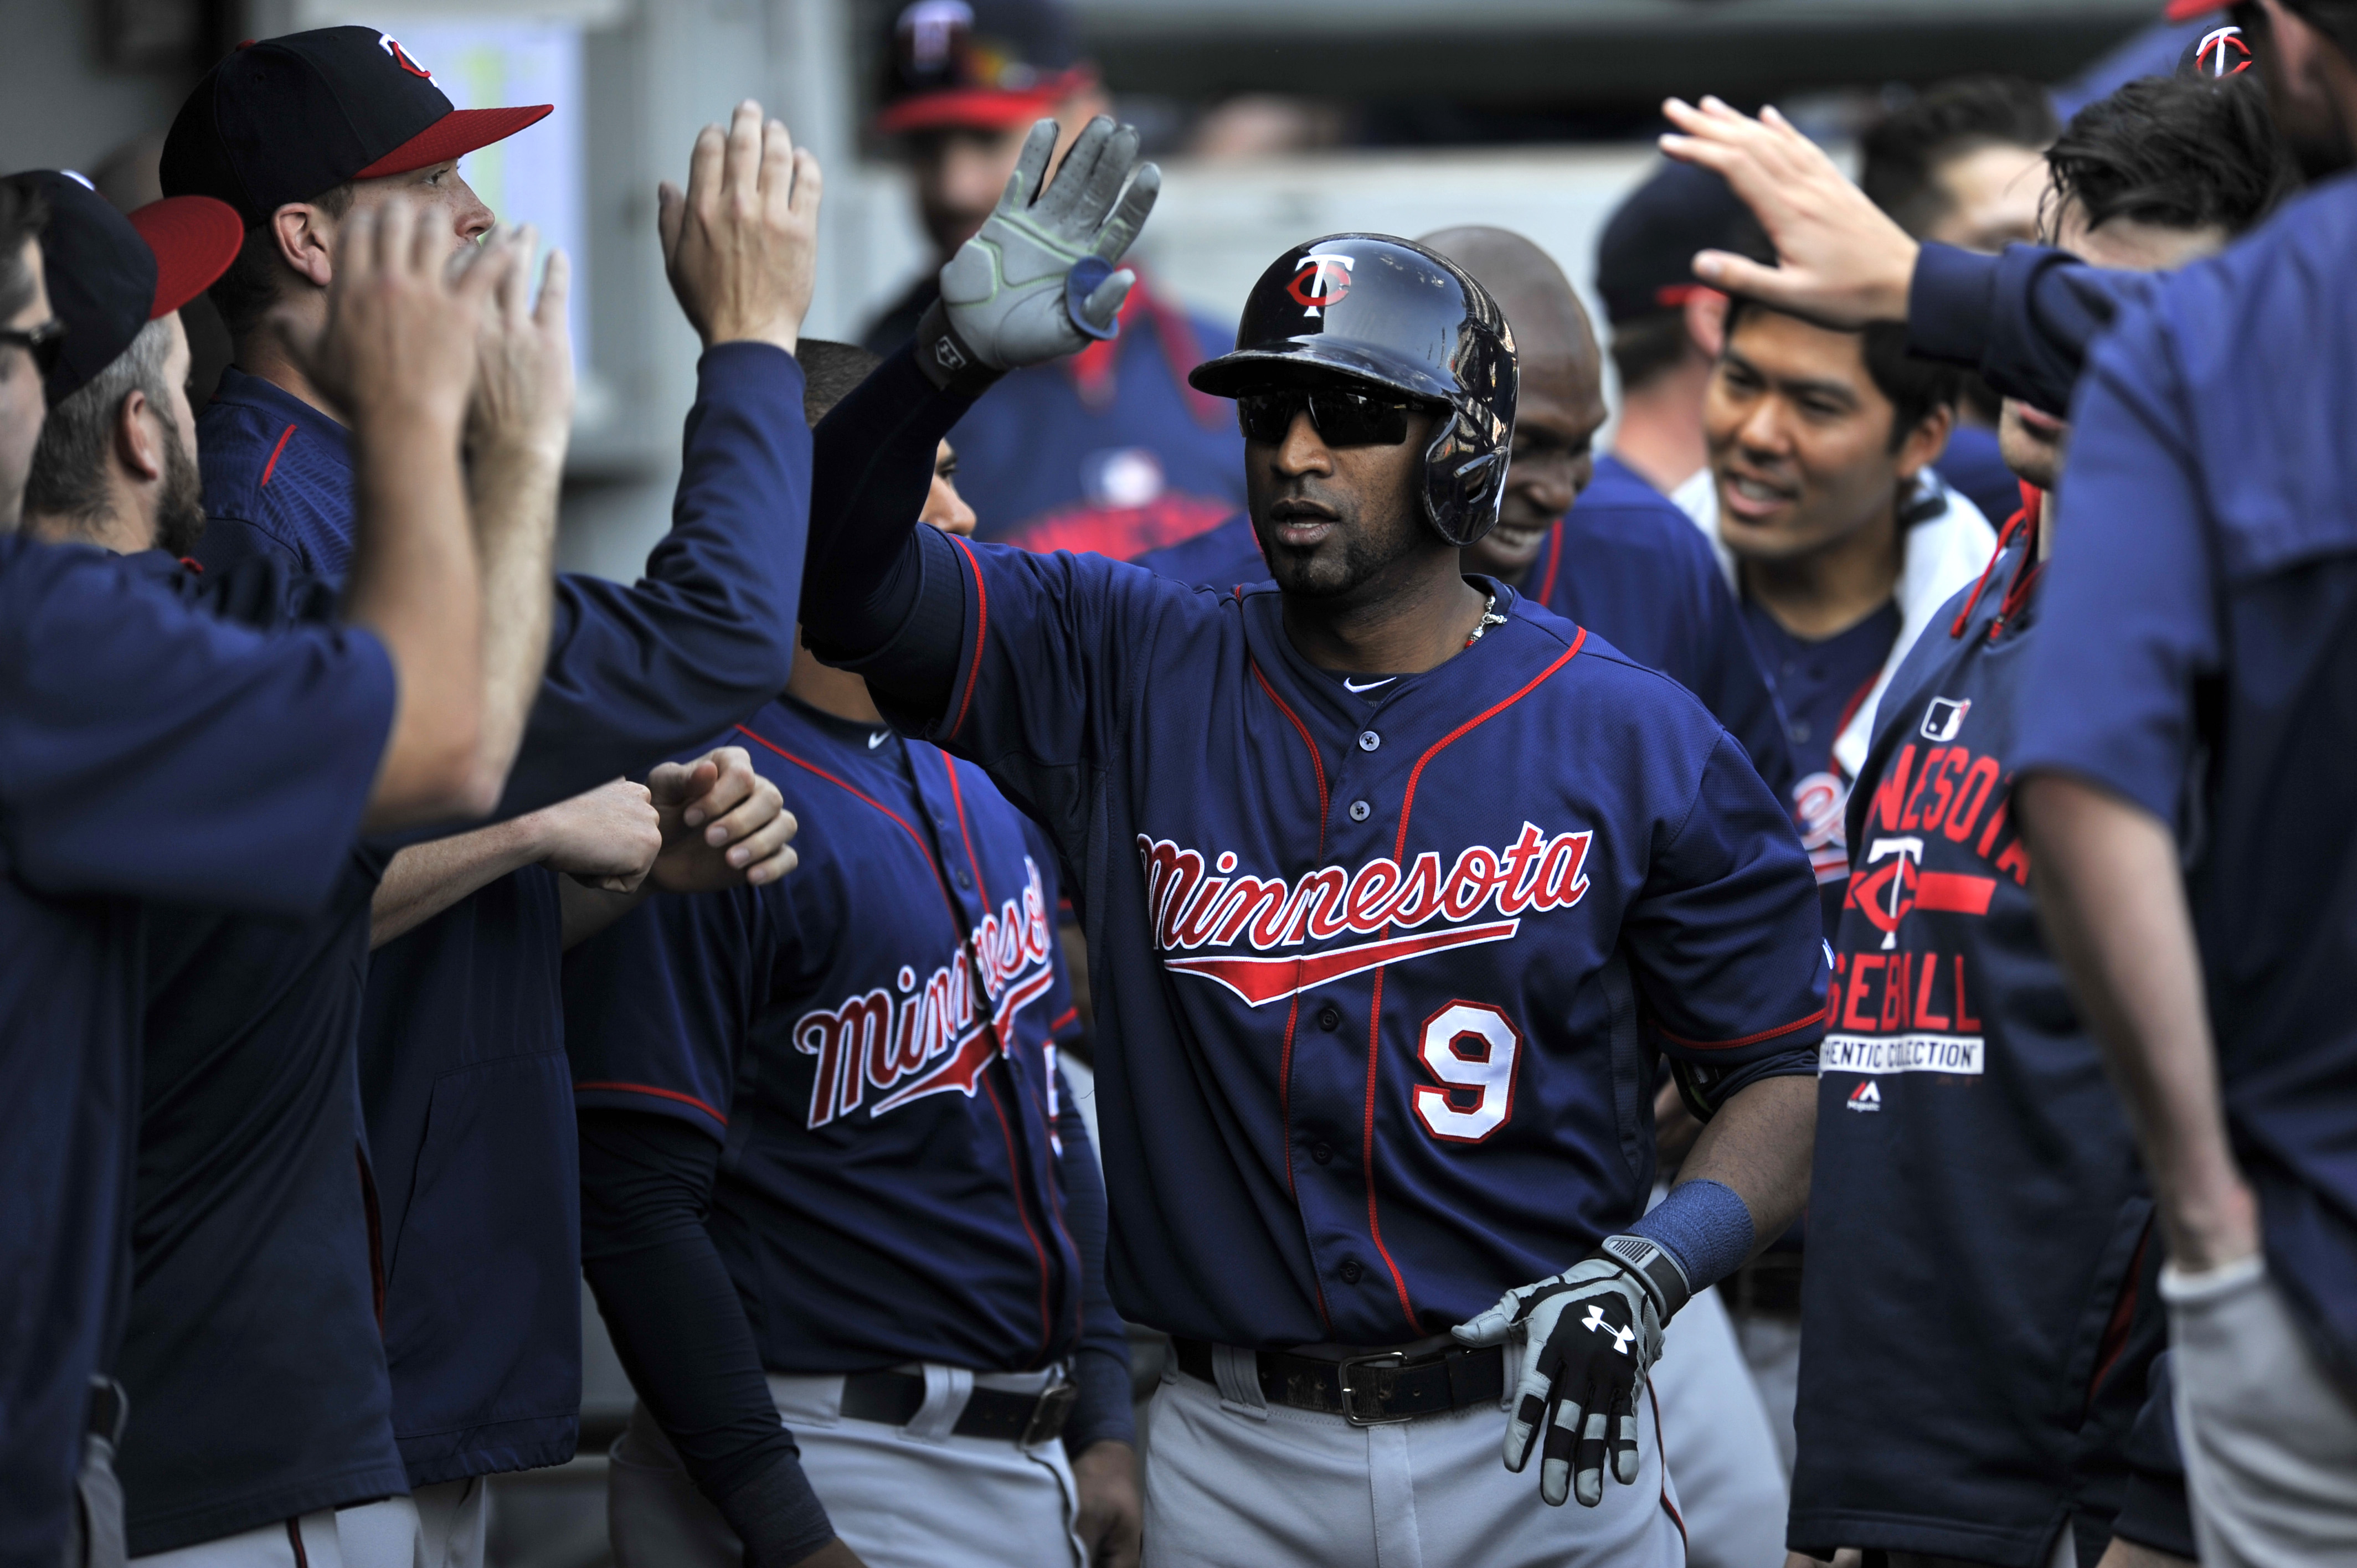 Minnesota Twins' Eduardo Nunez (9) celebrates with teammates in the dugout after hitting a solo home run during the second inning of a baseball game against the Chicago White Sox in Chicago, Saturday, May 23, 2015. (AP Photo/Paul Beaty)